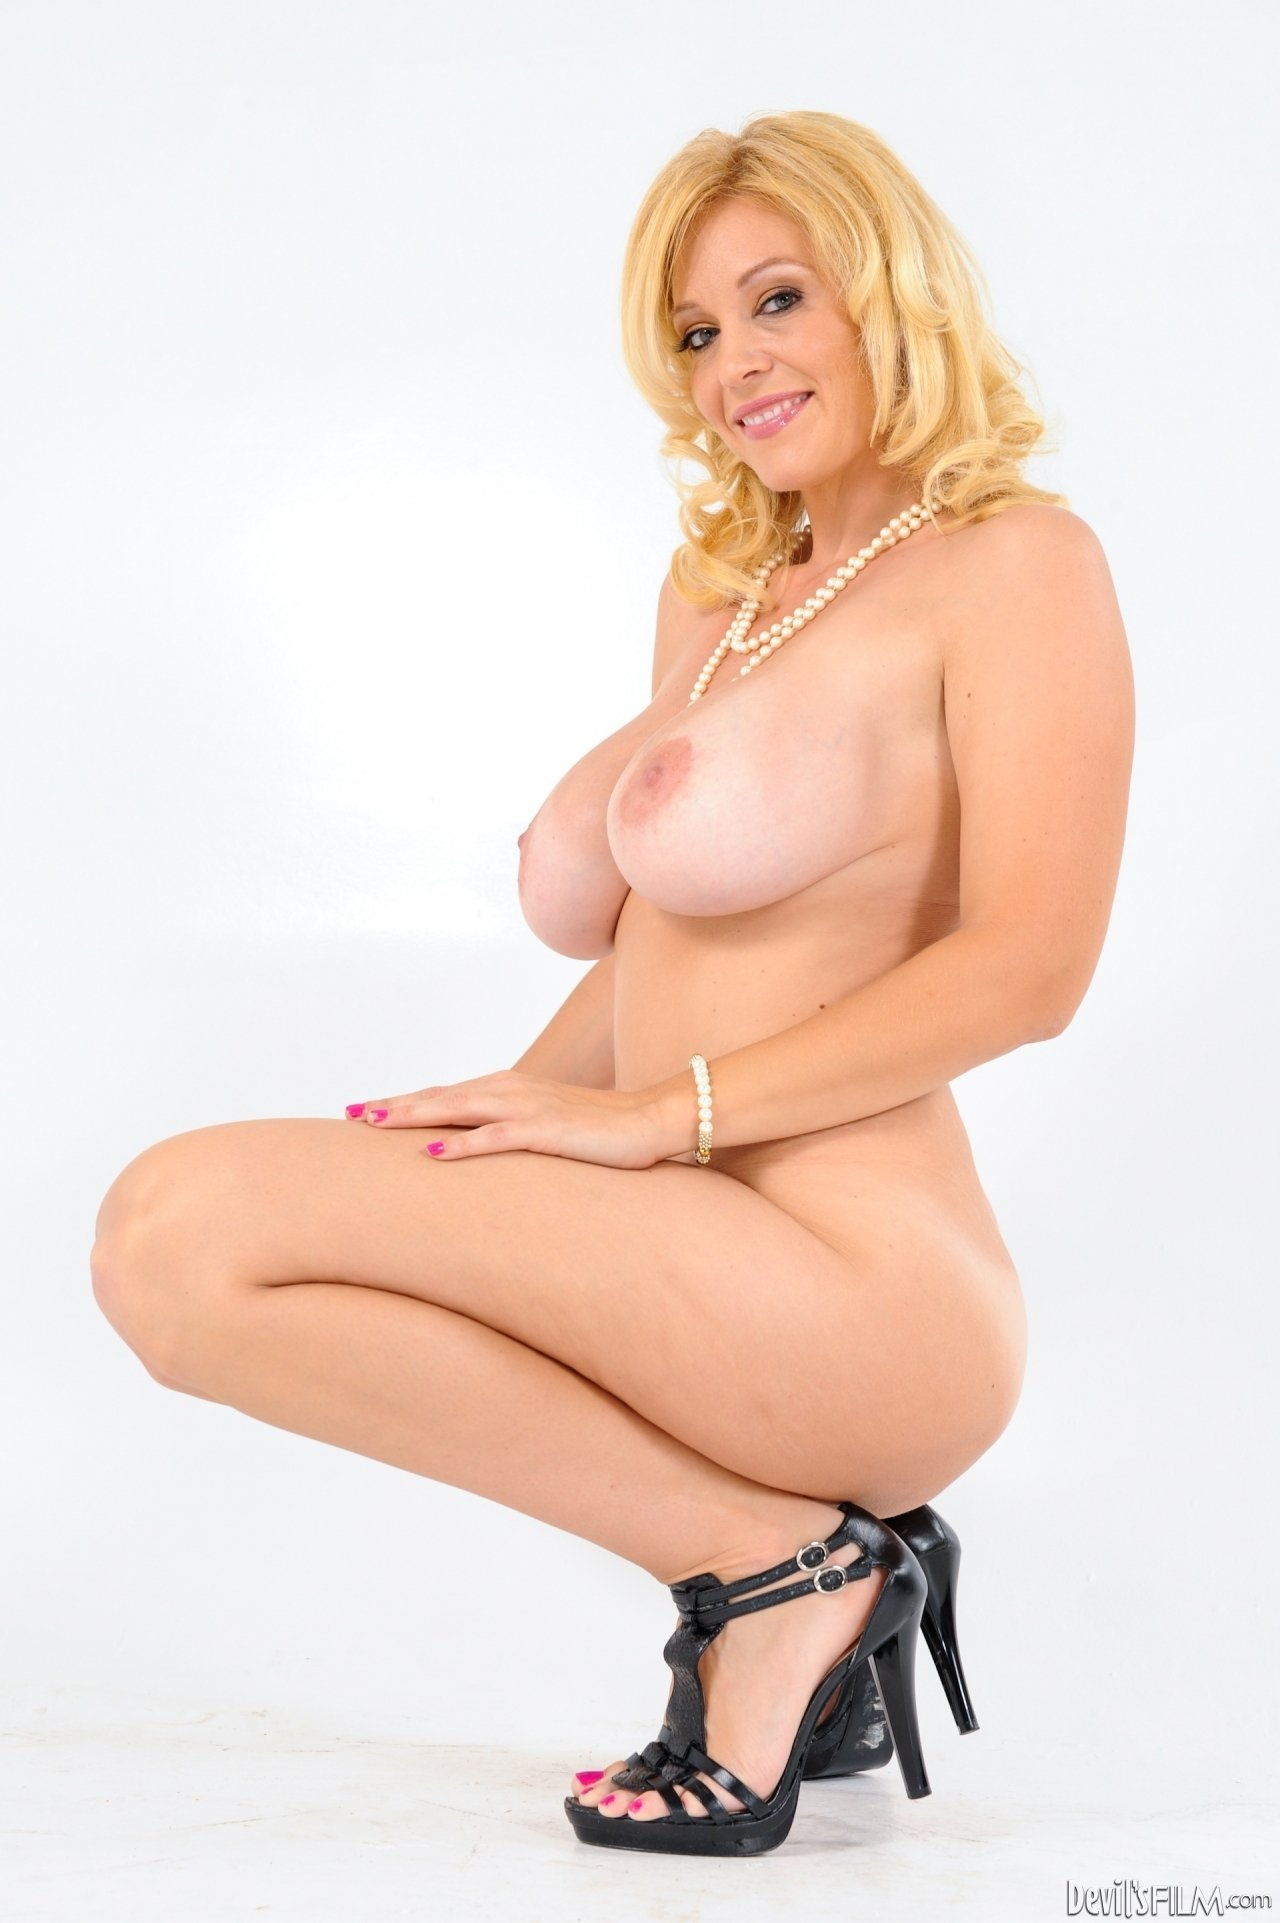 Earn money with erotic cyber chat